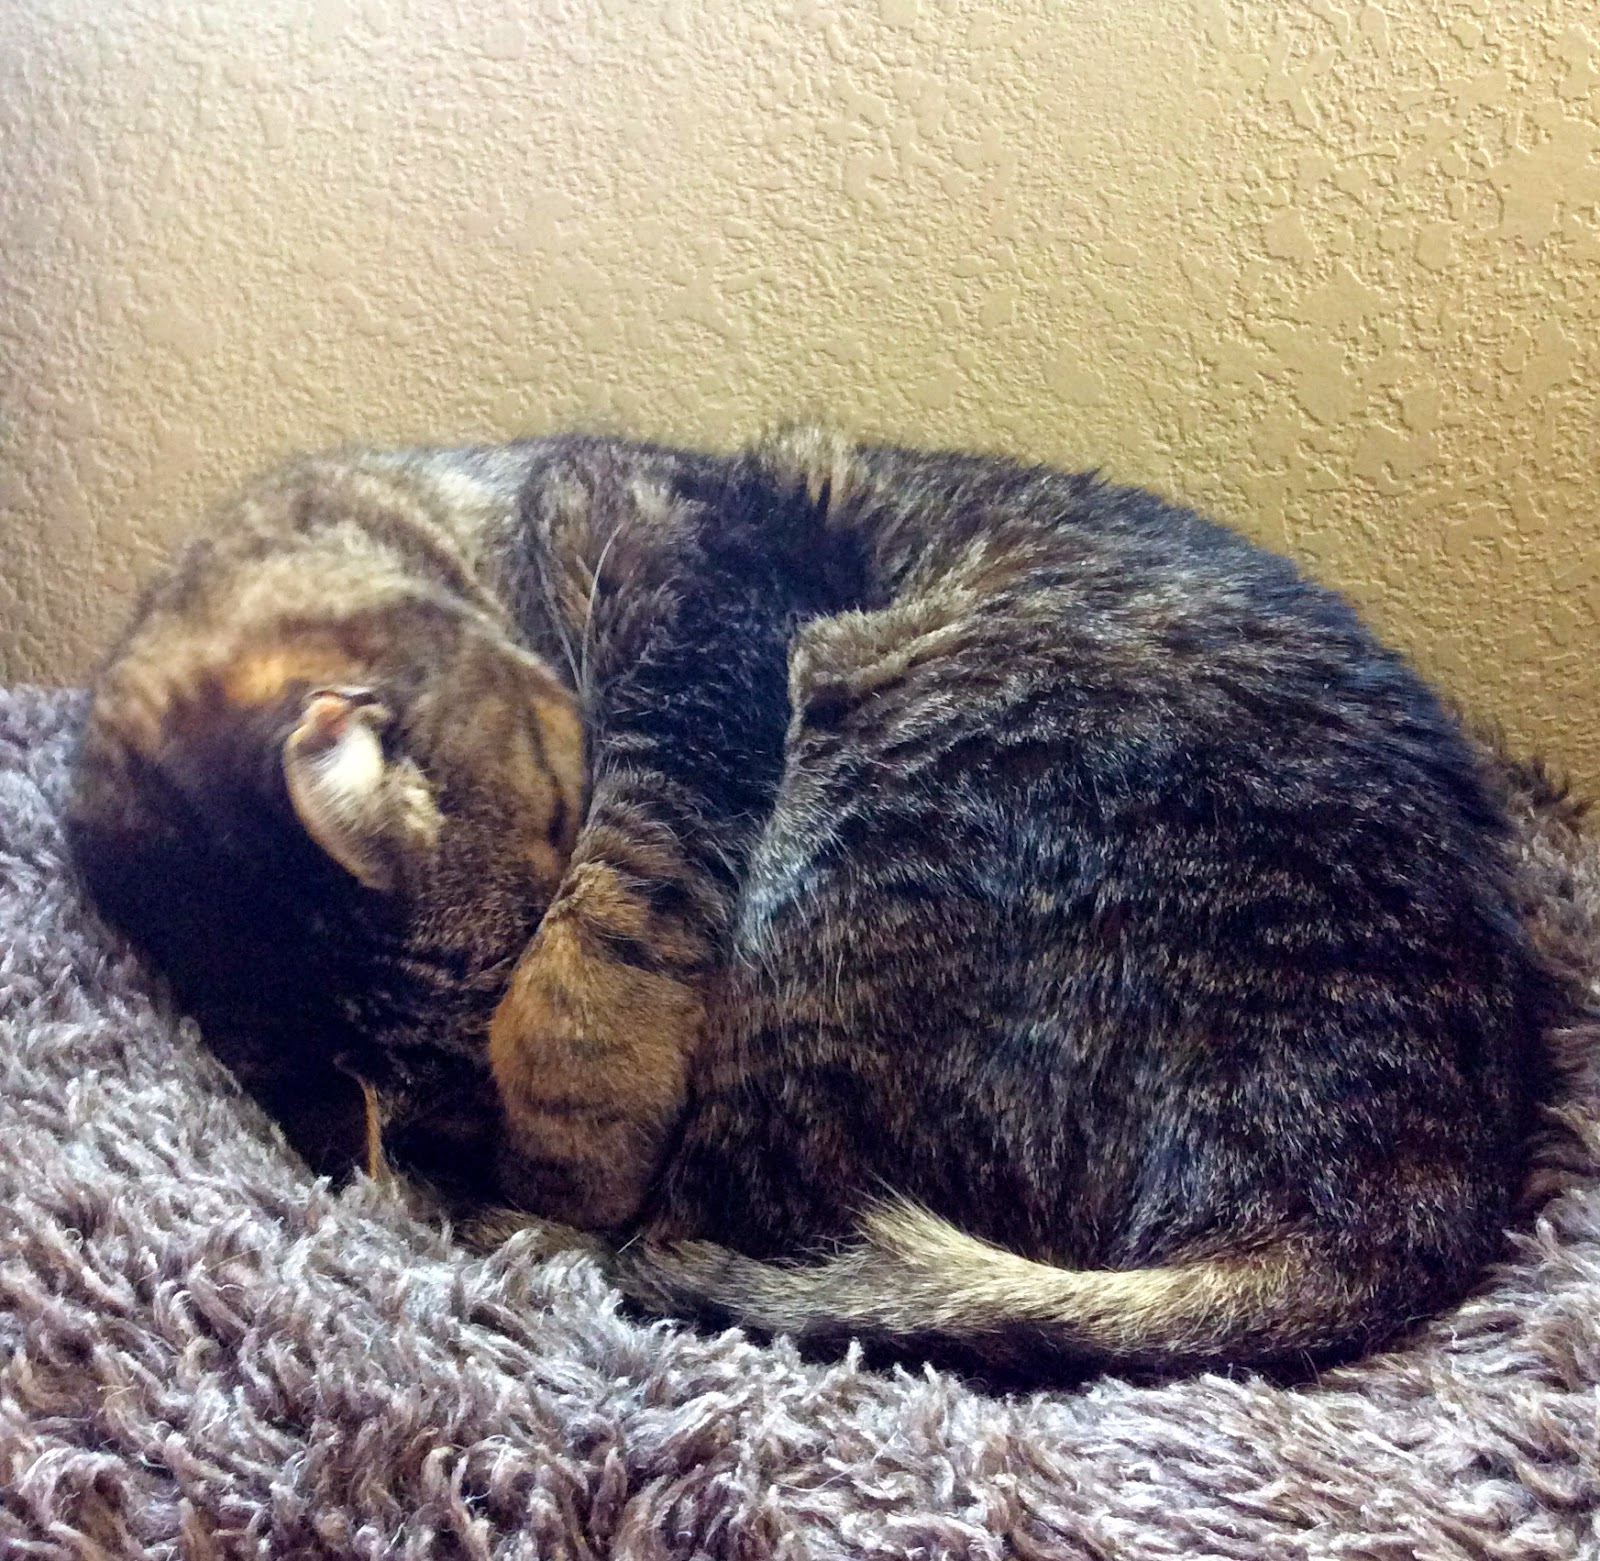 Eamon the cat curled up in his bed